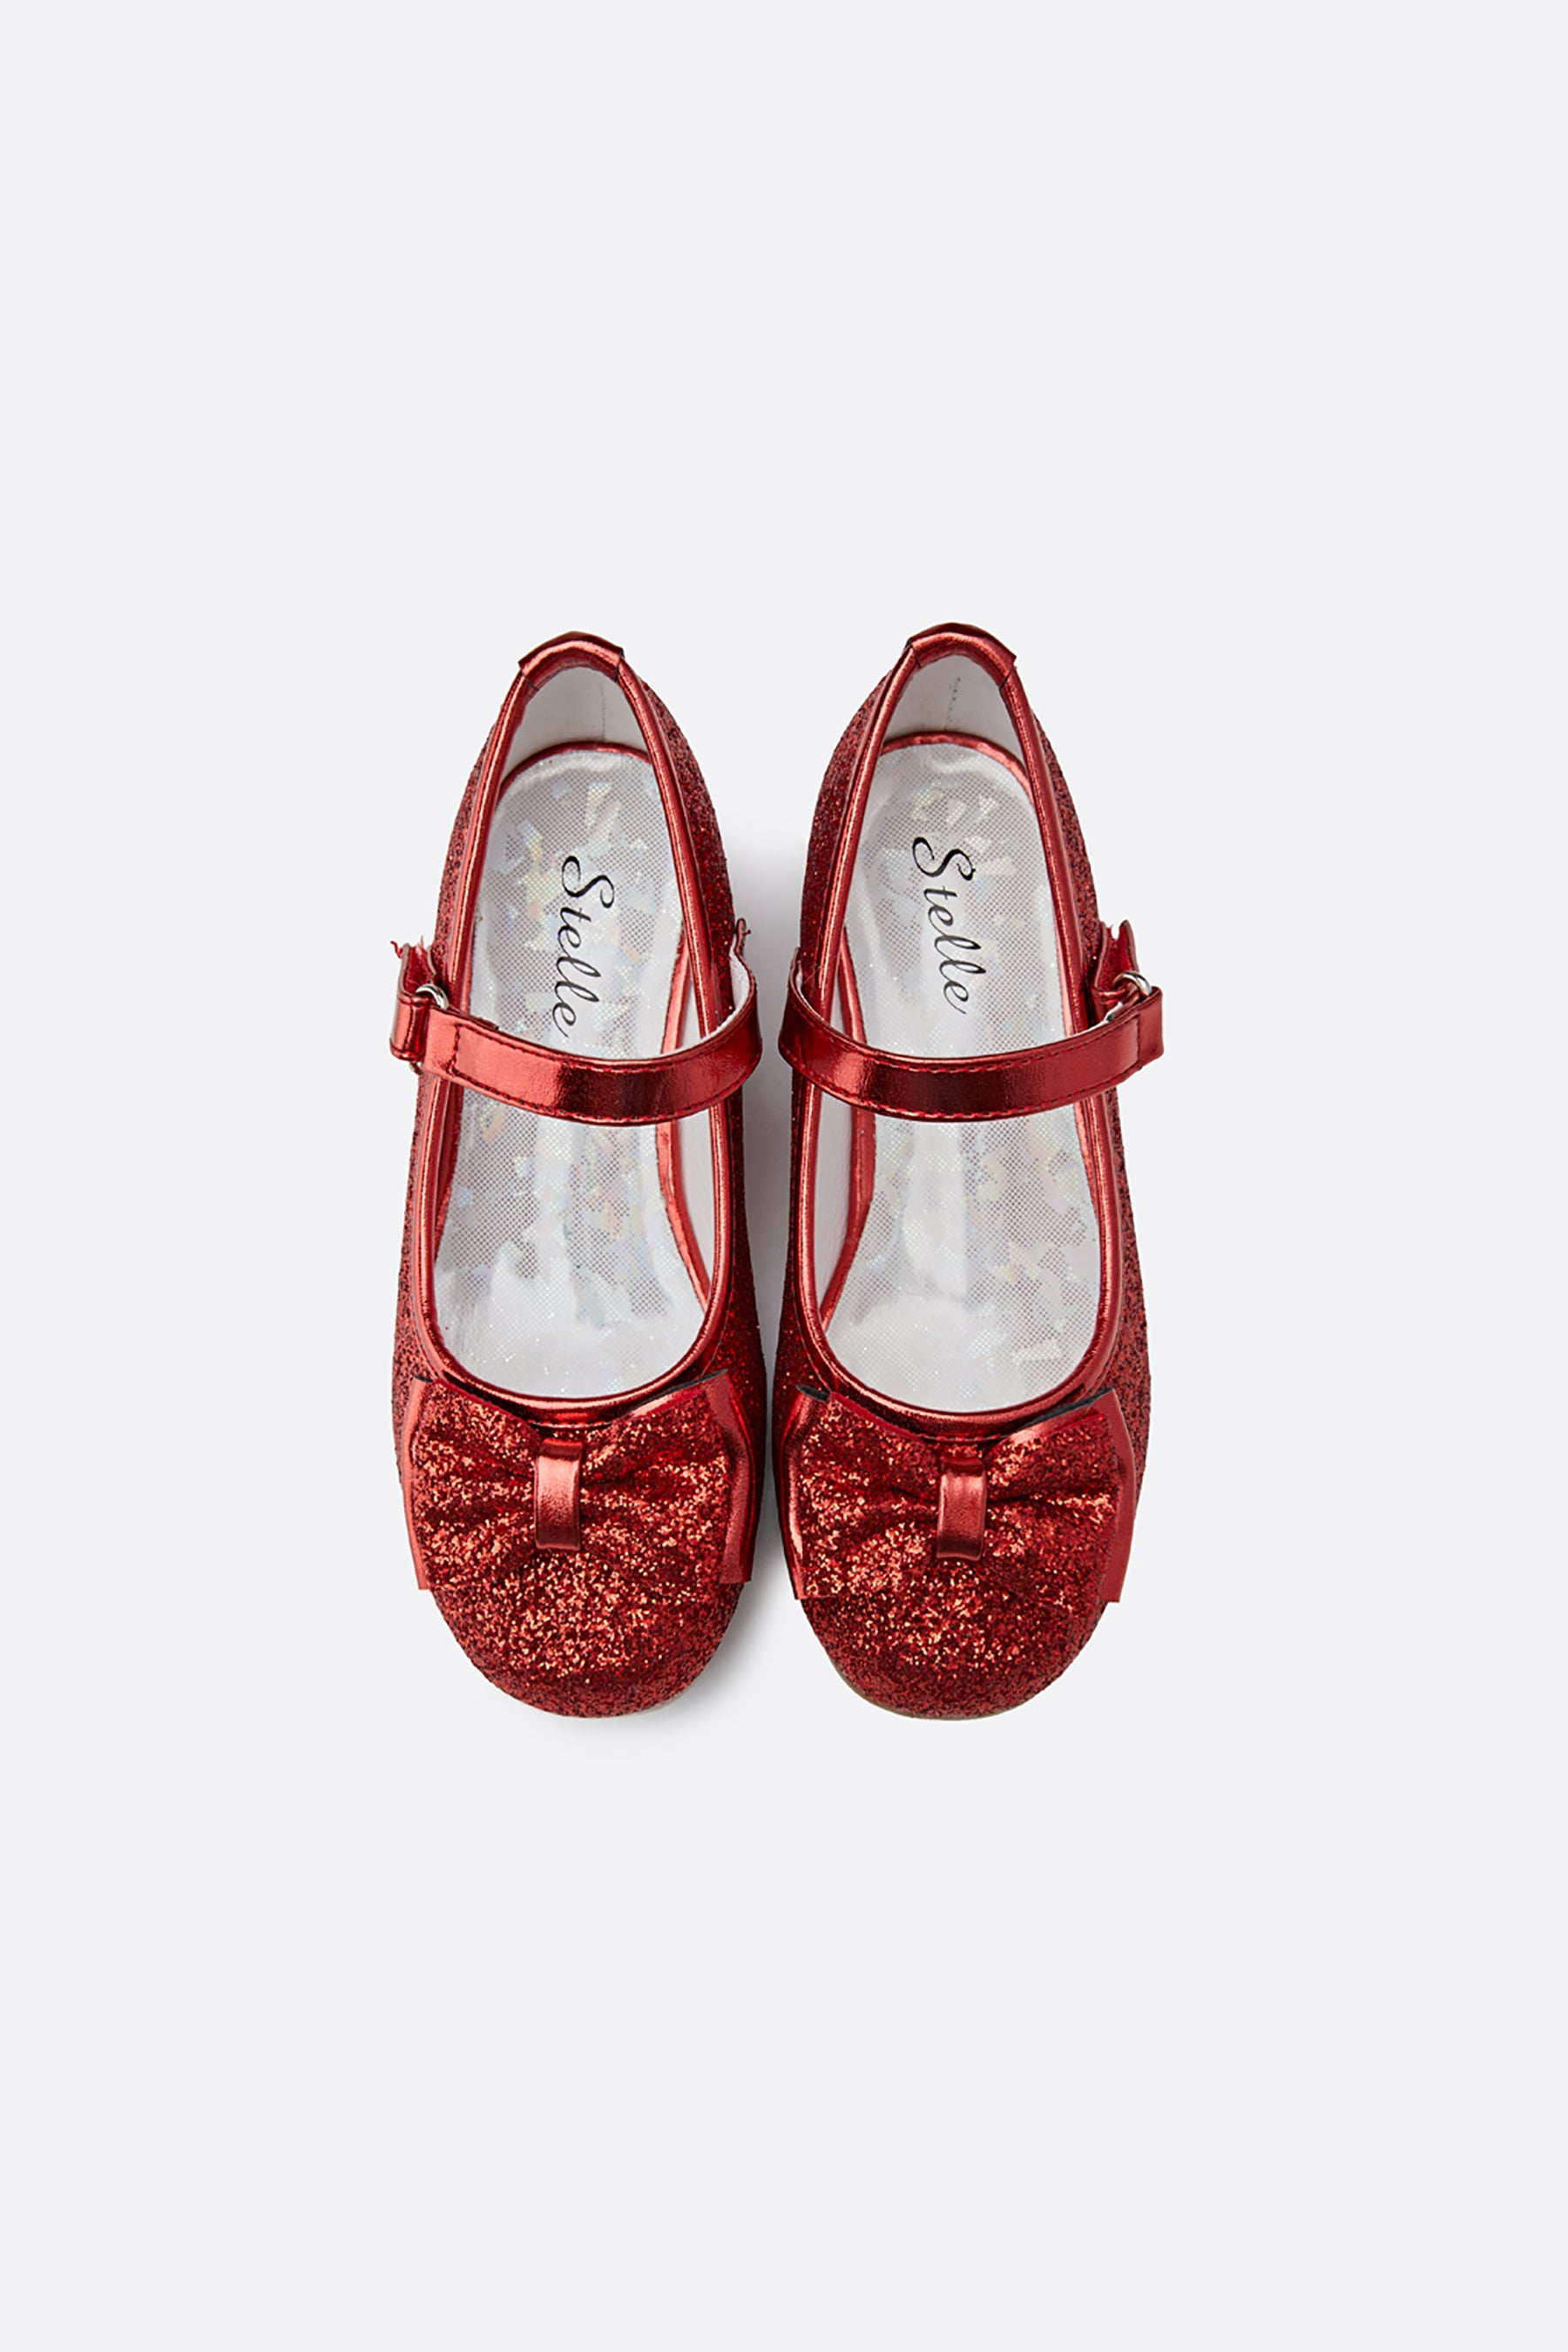 Girls Glitter Mary Jane Low Heel Shoes